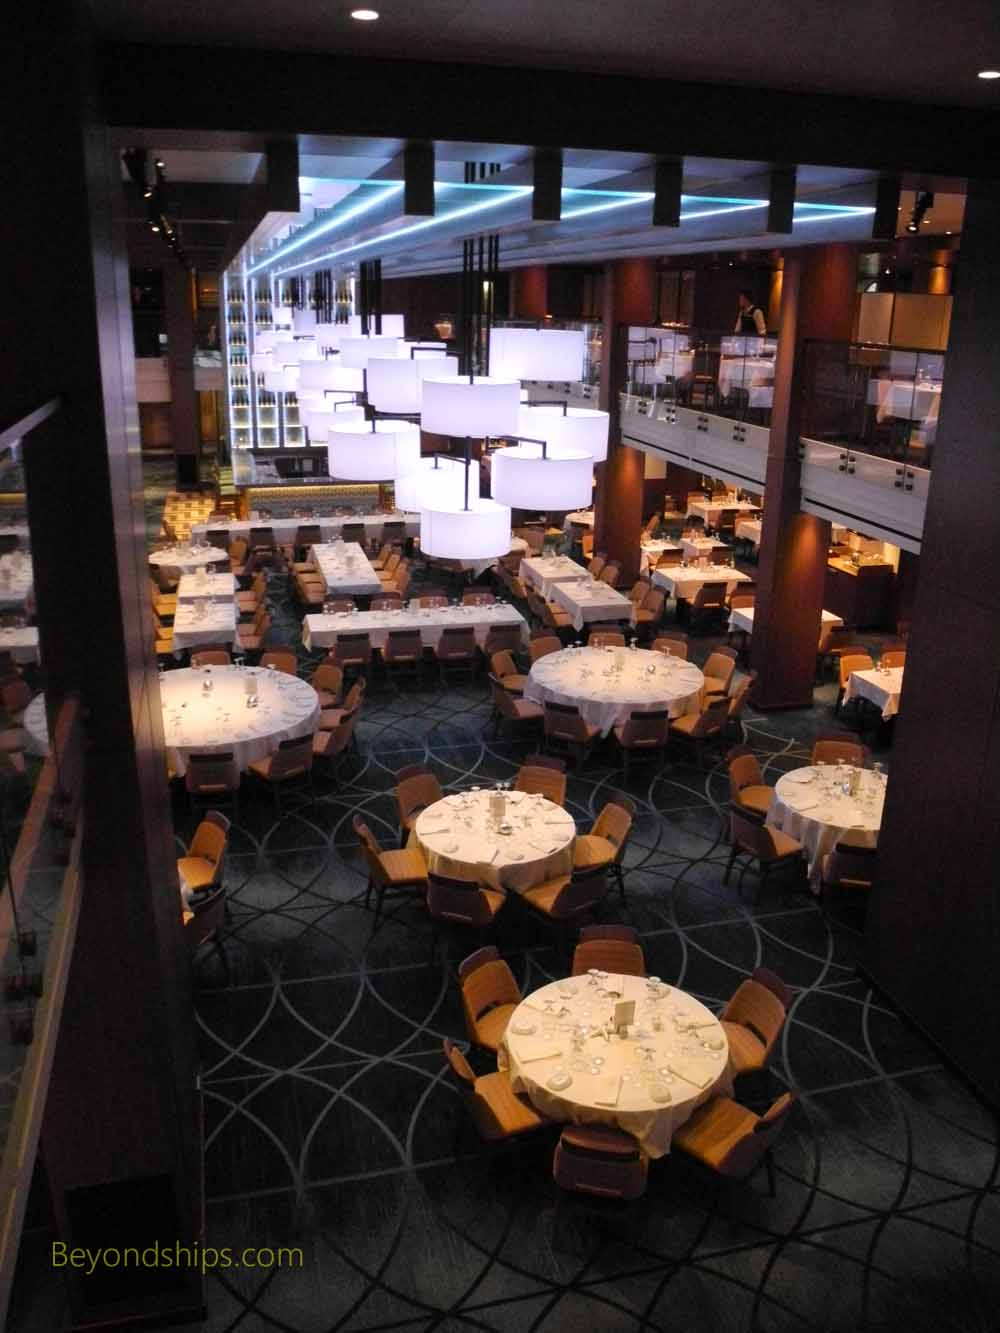 Carnival Vista, cruise ship, Horizons Dining Room